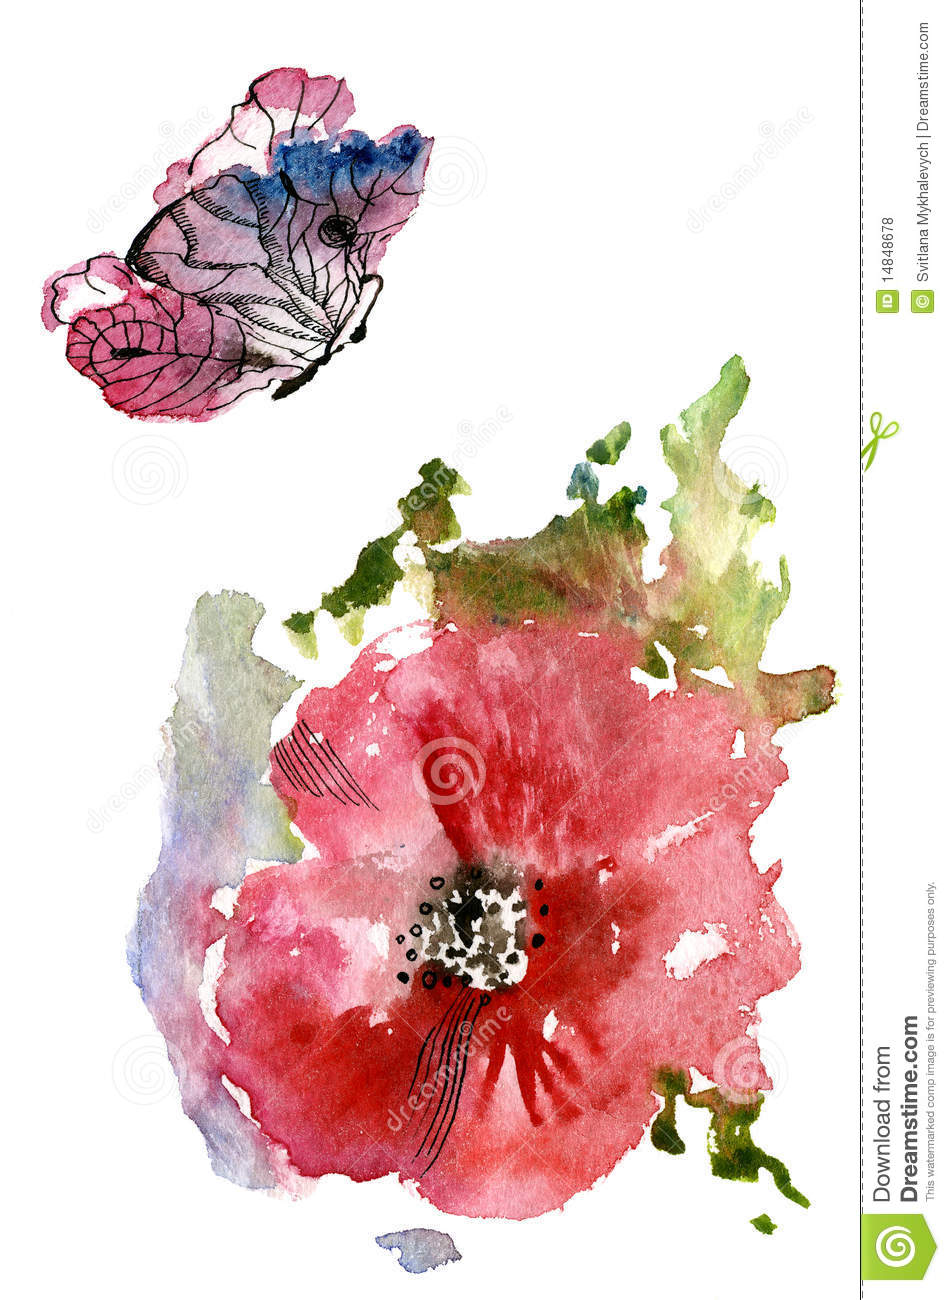 Red Poppies and a butterfly